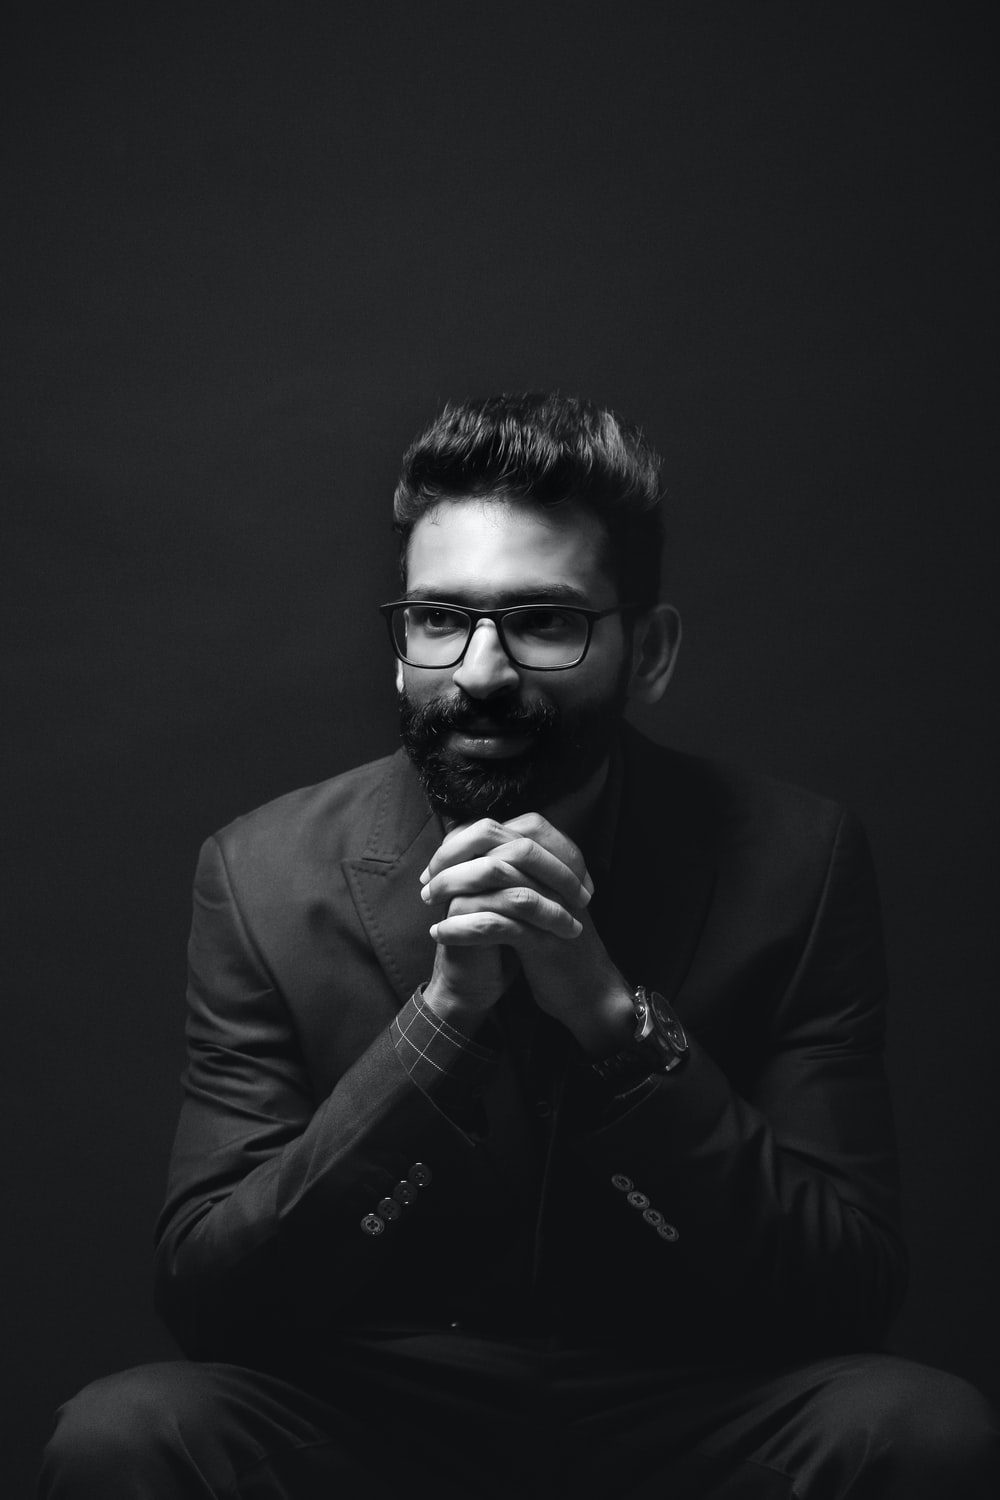 grayscale photography of sitting man wearing suit